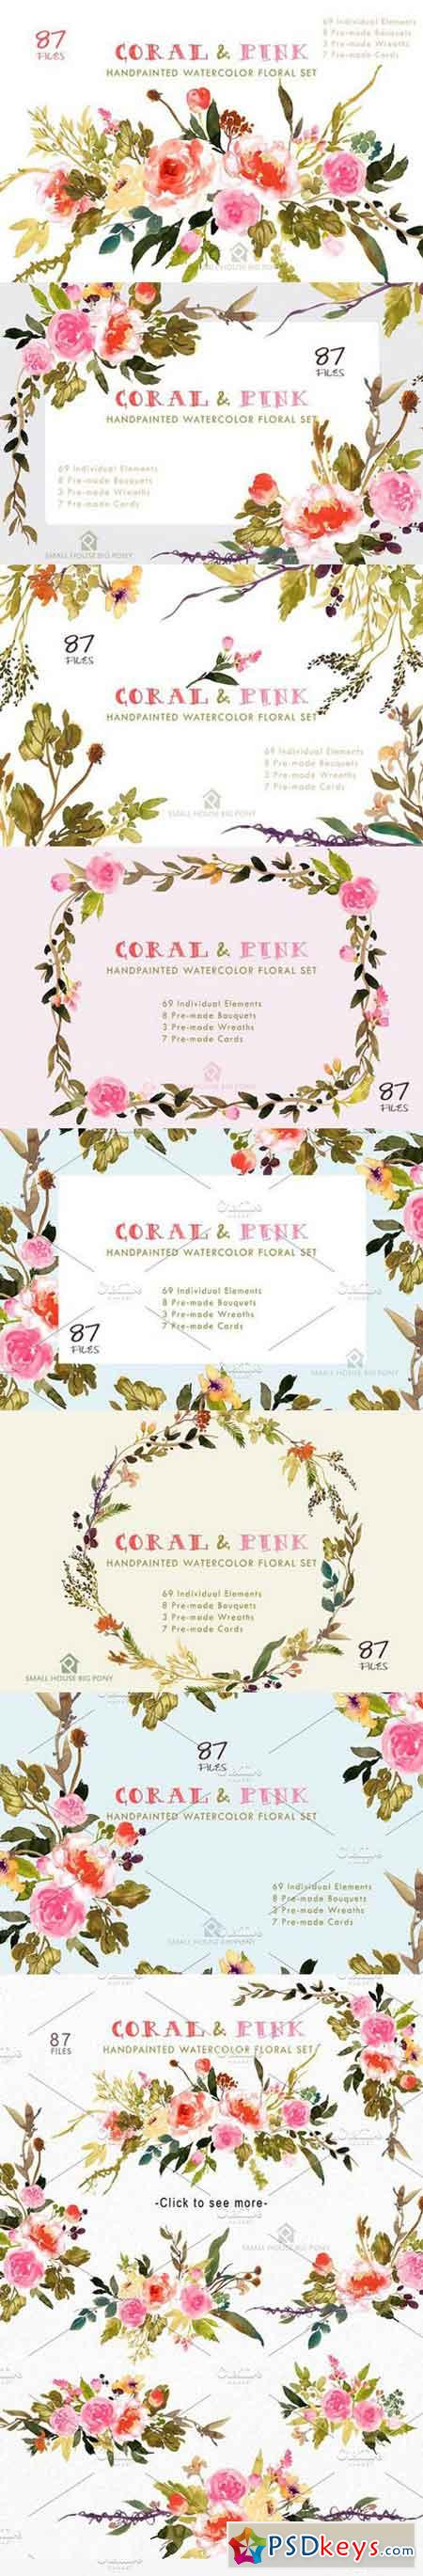 Coral & Pink - Flower Collection 1354647